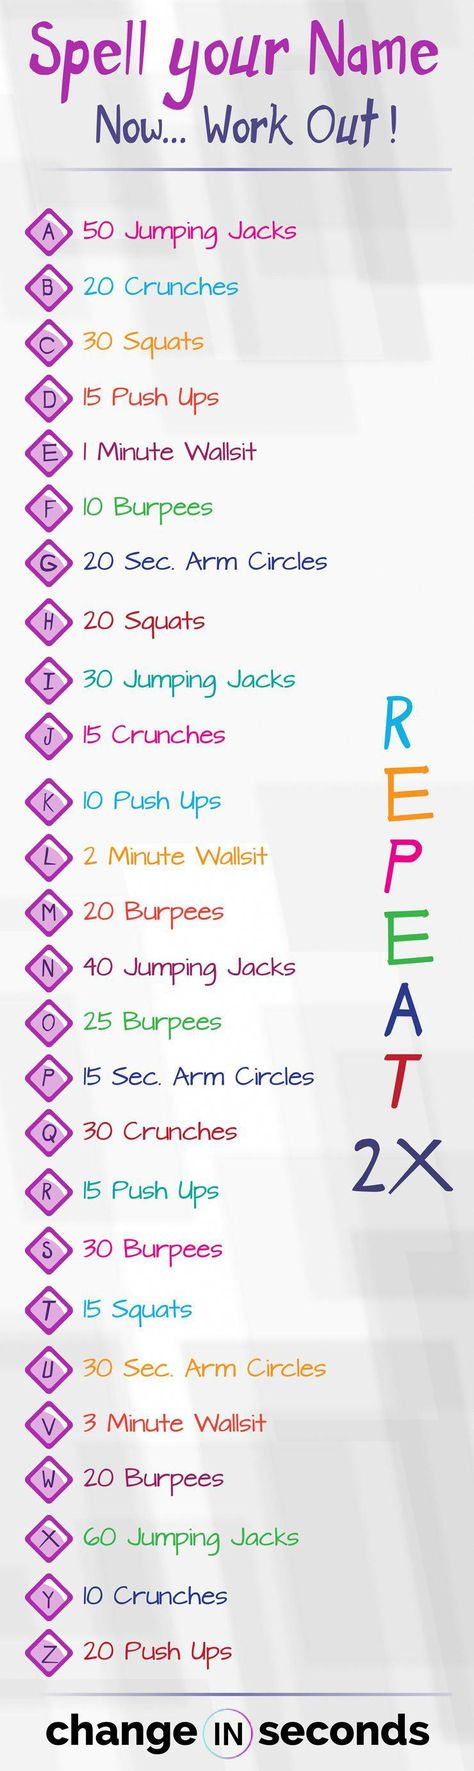 Spell Your Name Workout Challenge Get Fit Now! (Download PDF). Get your workout on and get results today! #homeworkoutplan, #exerciseplan, #hittworkout, #homeworkouts, #hittworkoutsathome, #workoutschedule, #workouttoloseweightfast, #workoutplantoloseweight #workouttips